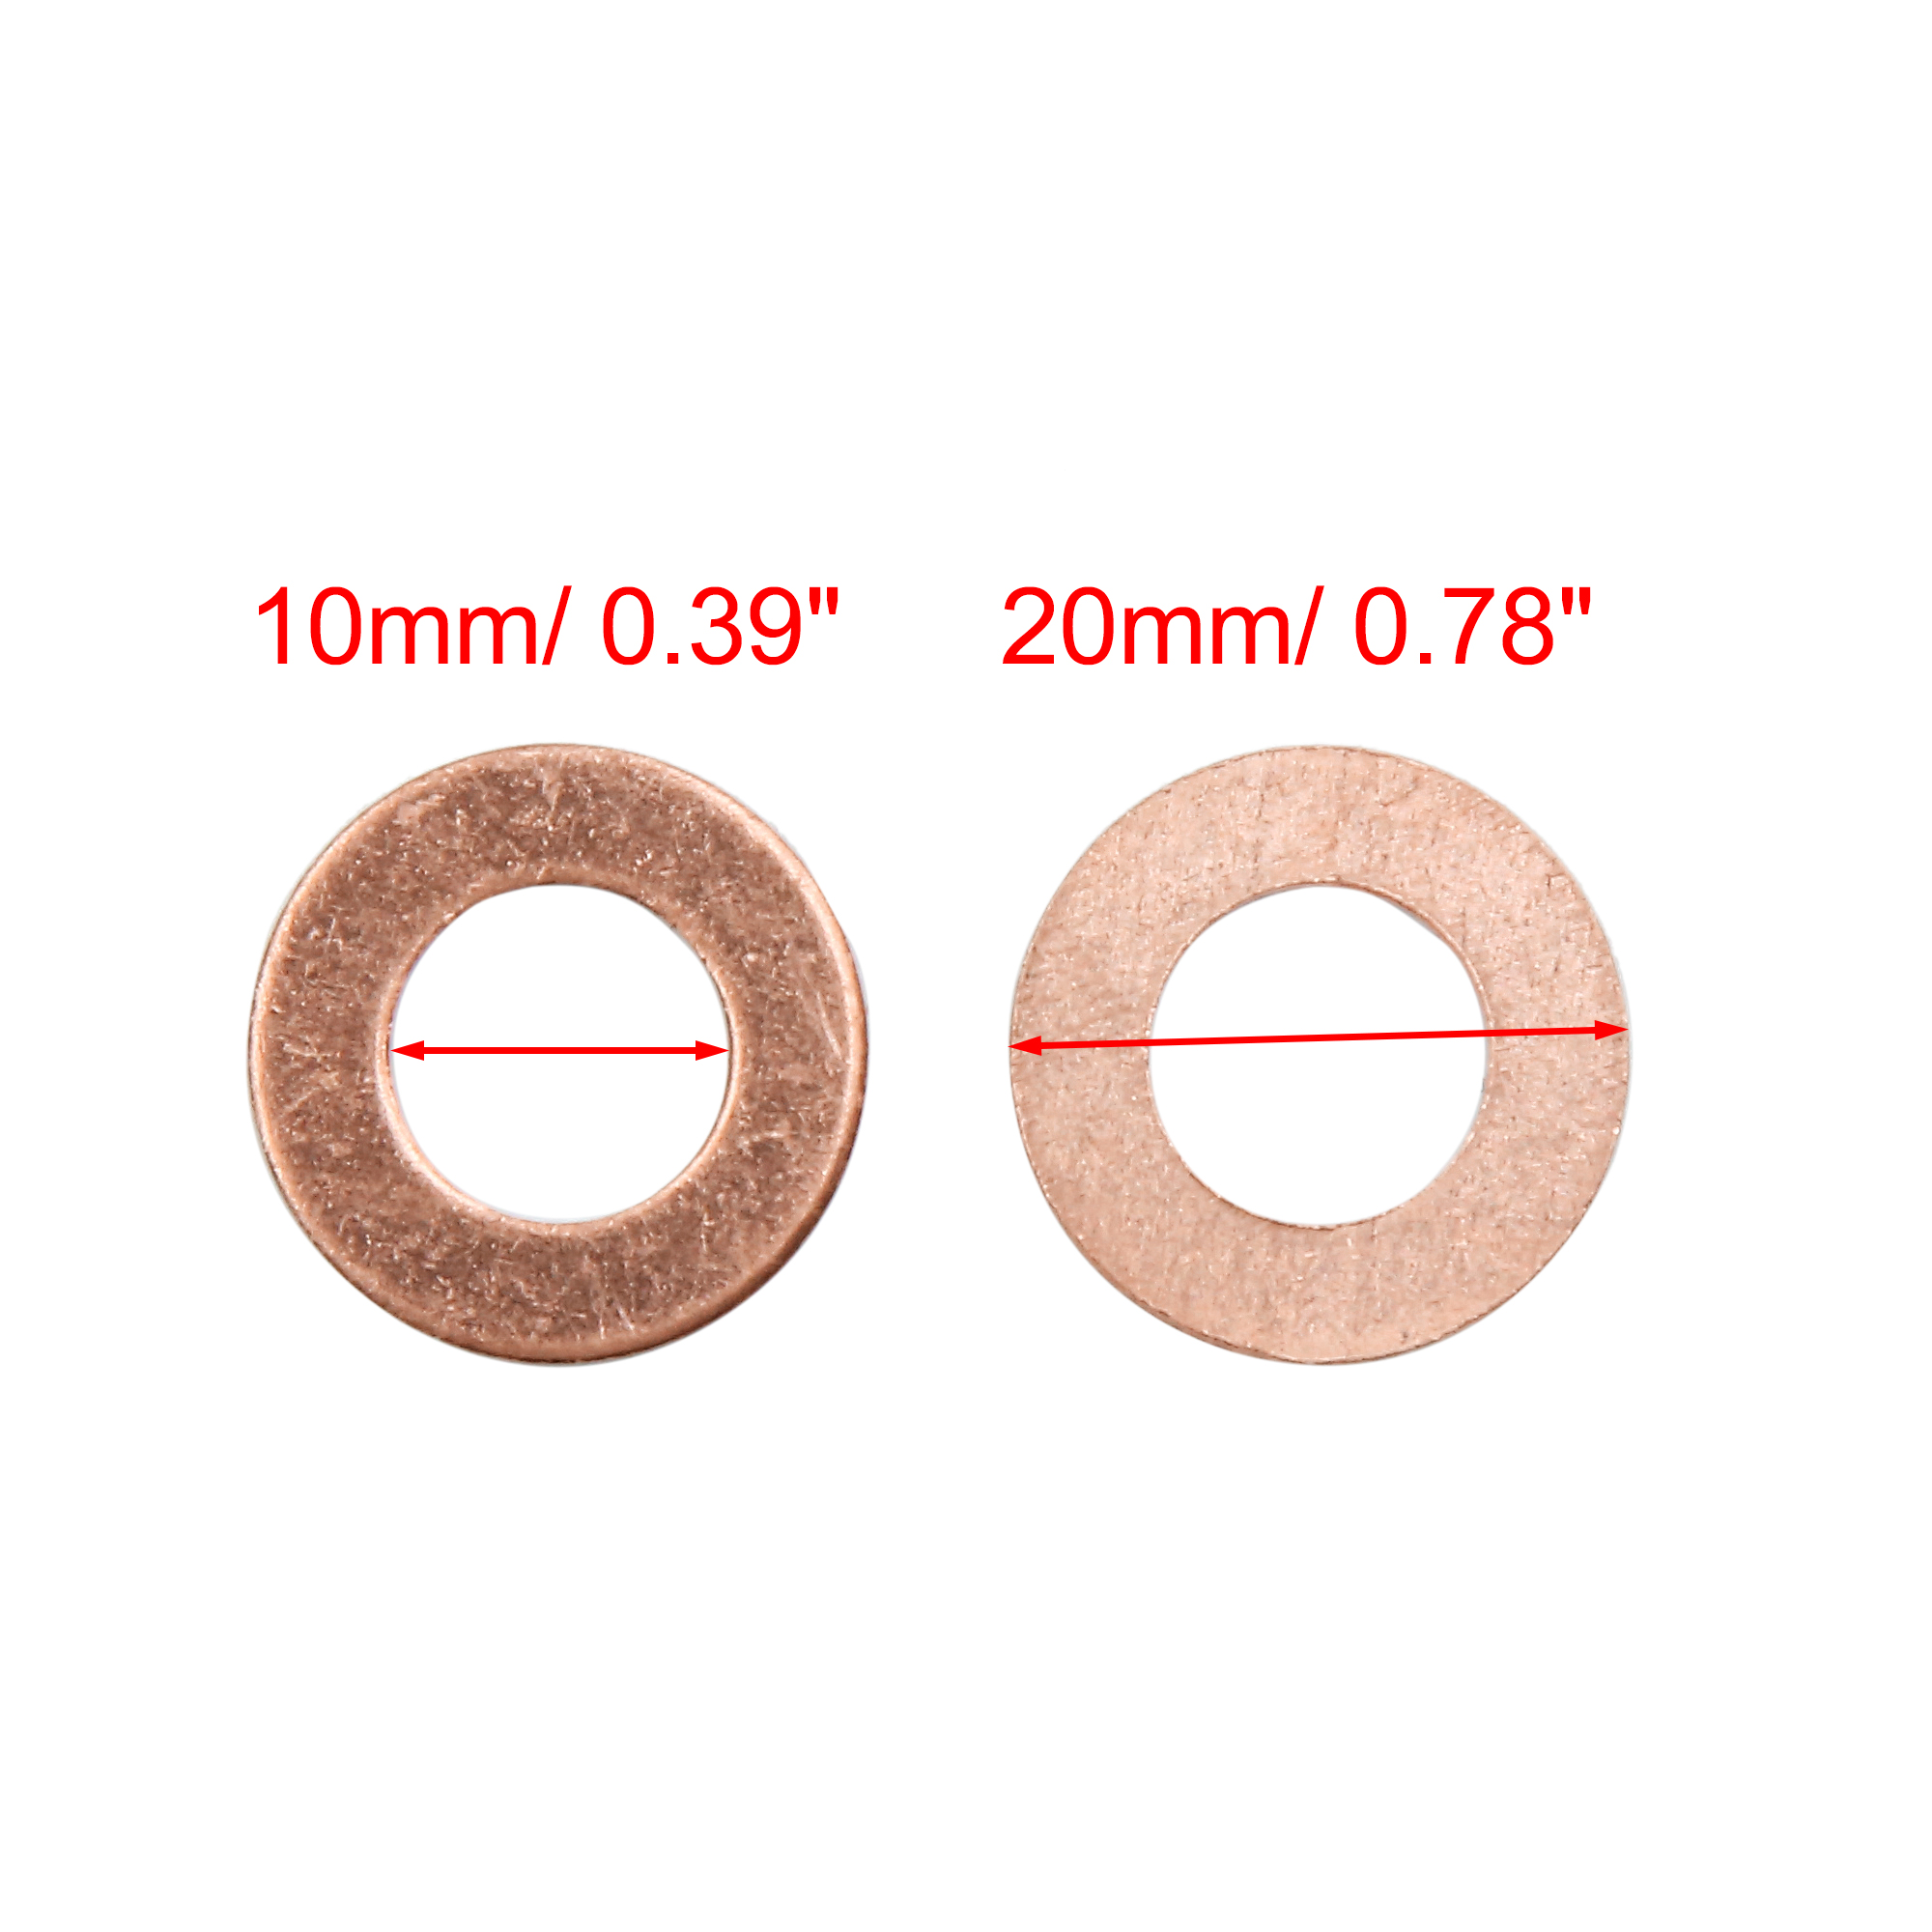 20 Pcs 10mm Inner Diameter Copper Washers Flat Sealing Gaskets Rings - image 2 de 3